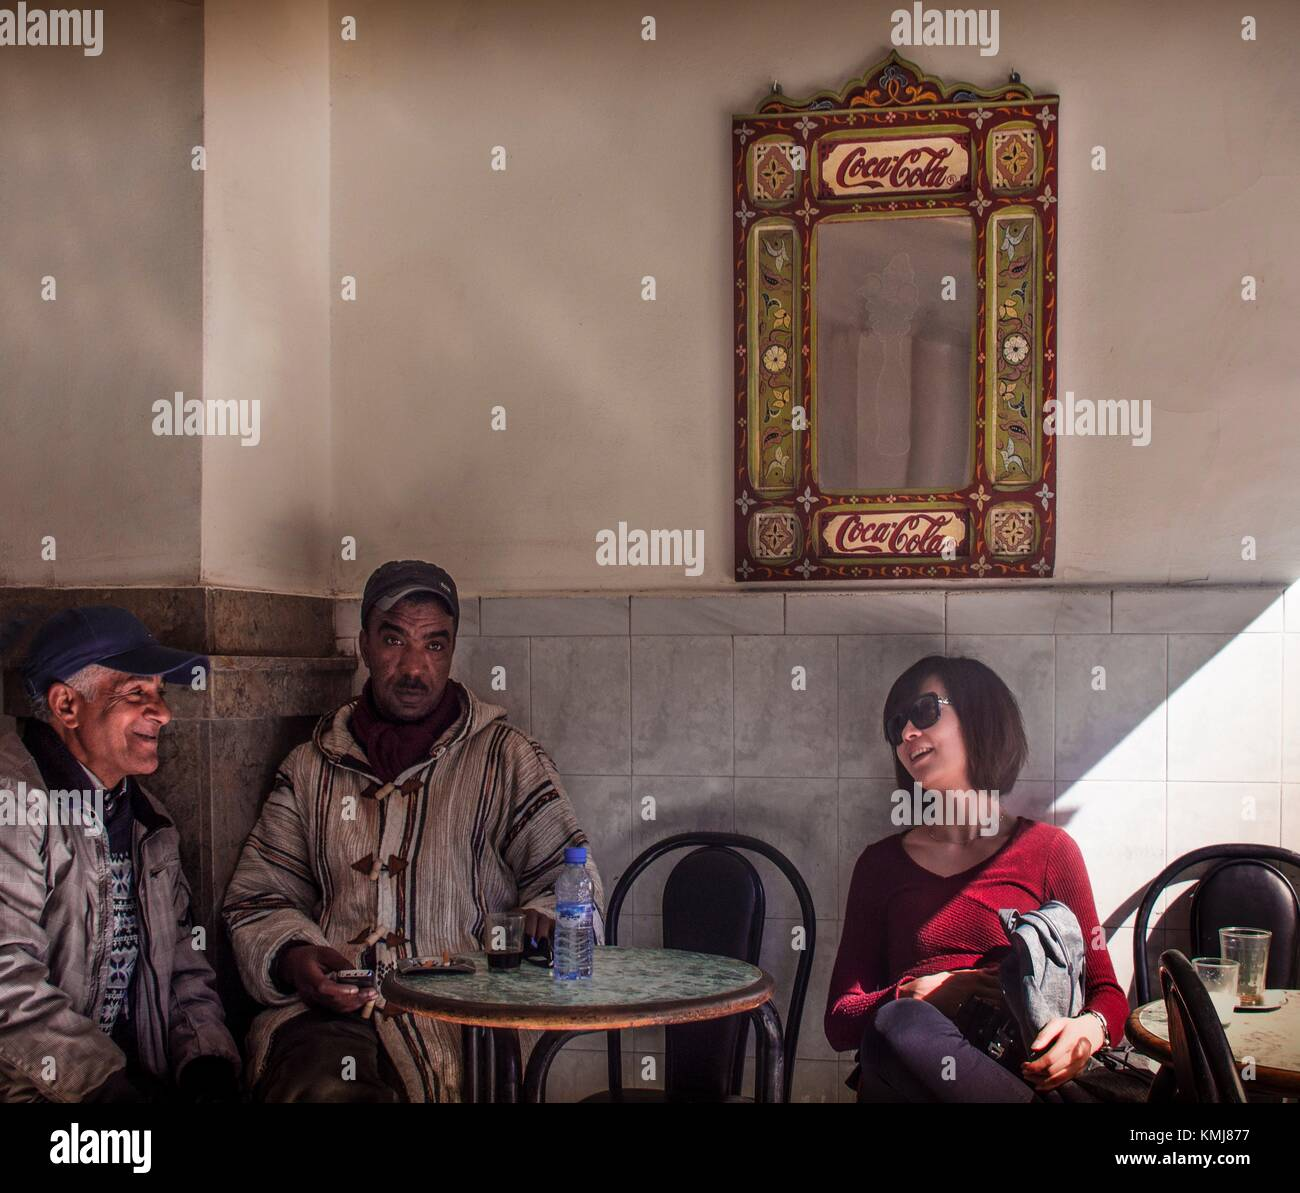 Morocco, Fes, asian tourist with moroccans at Fes. - Stock Image